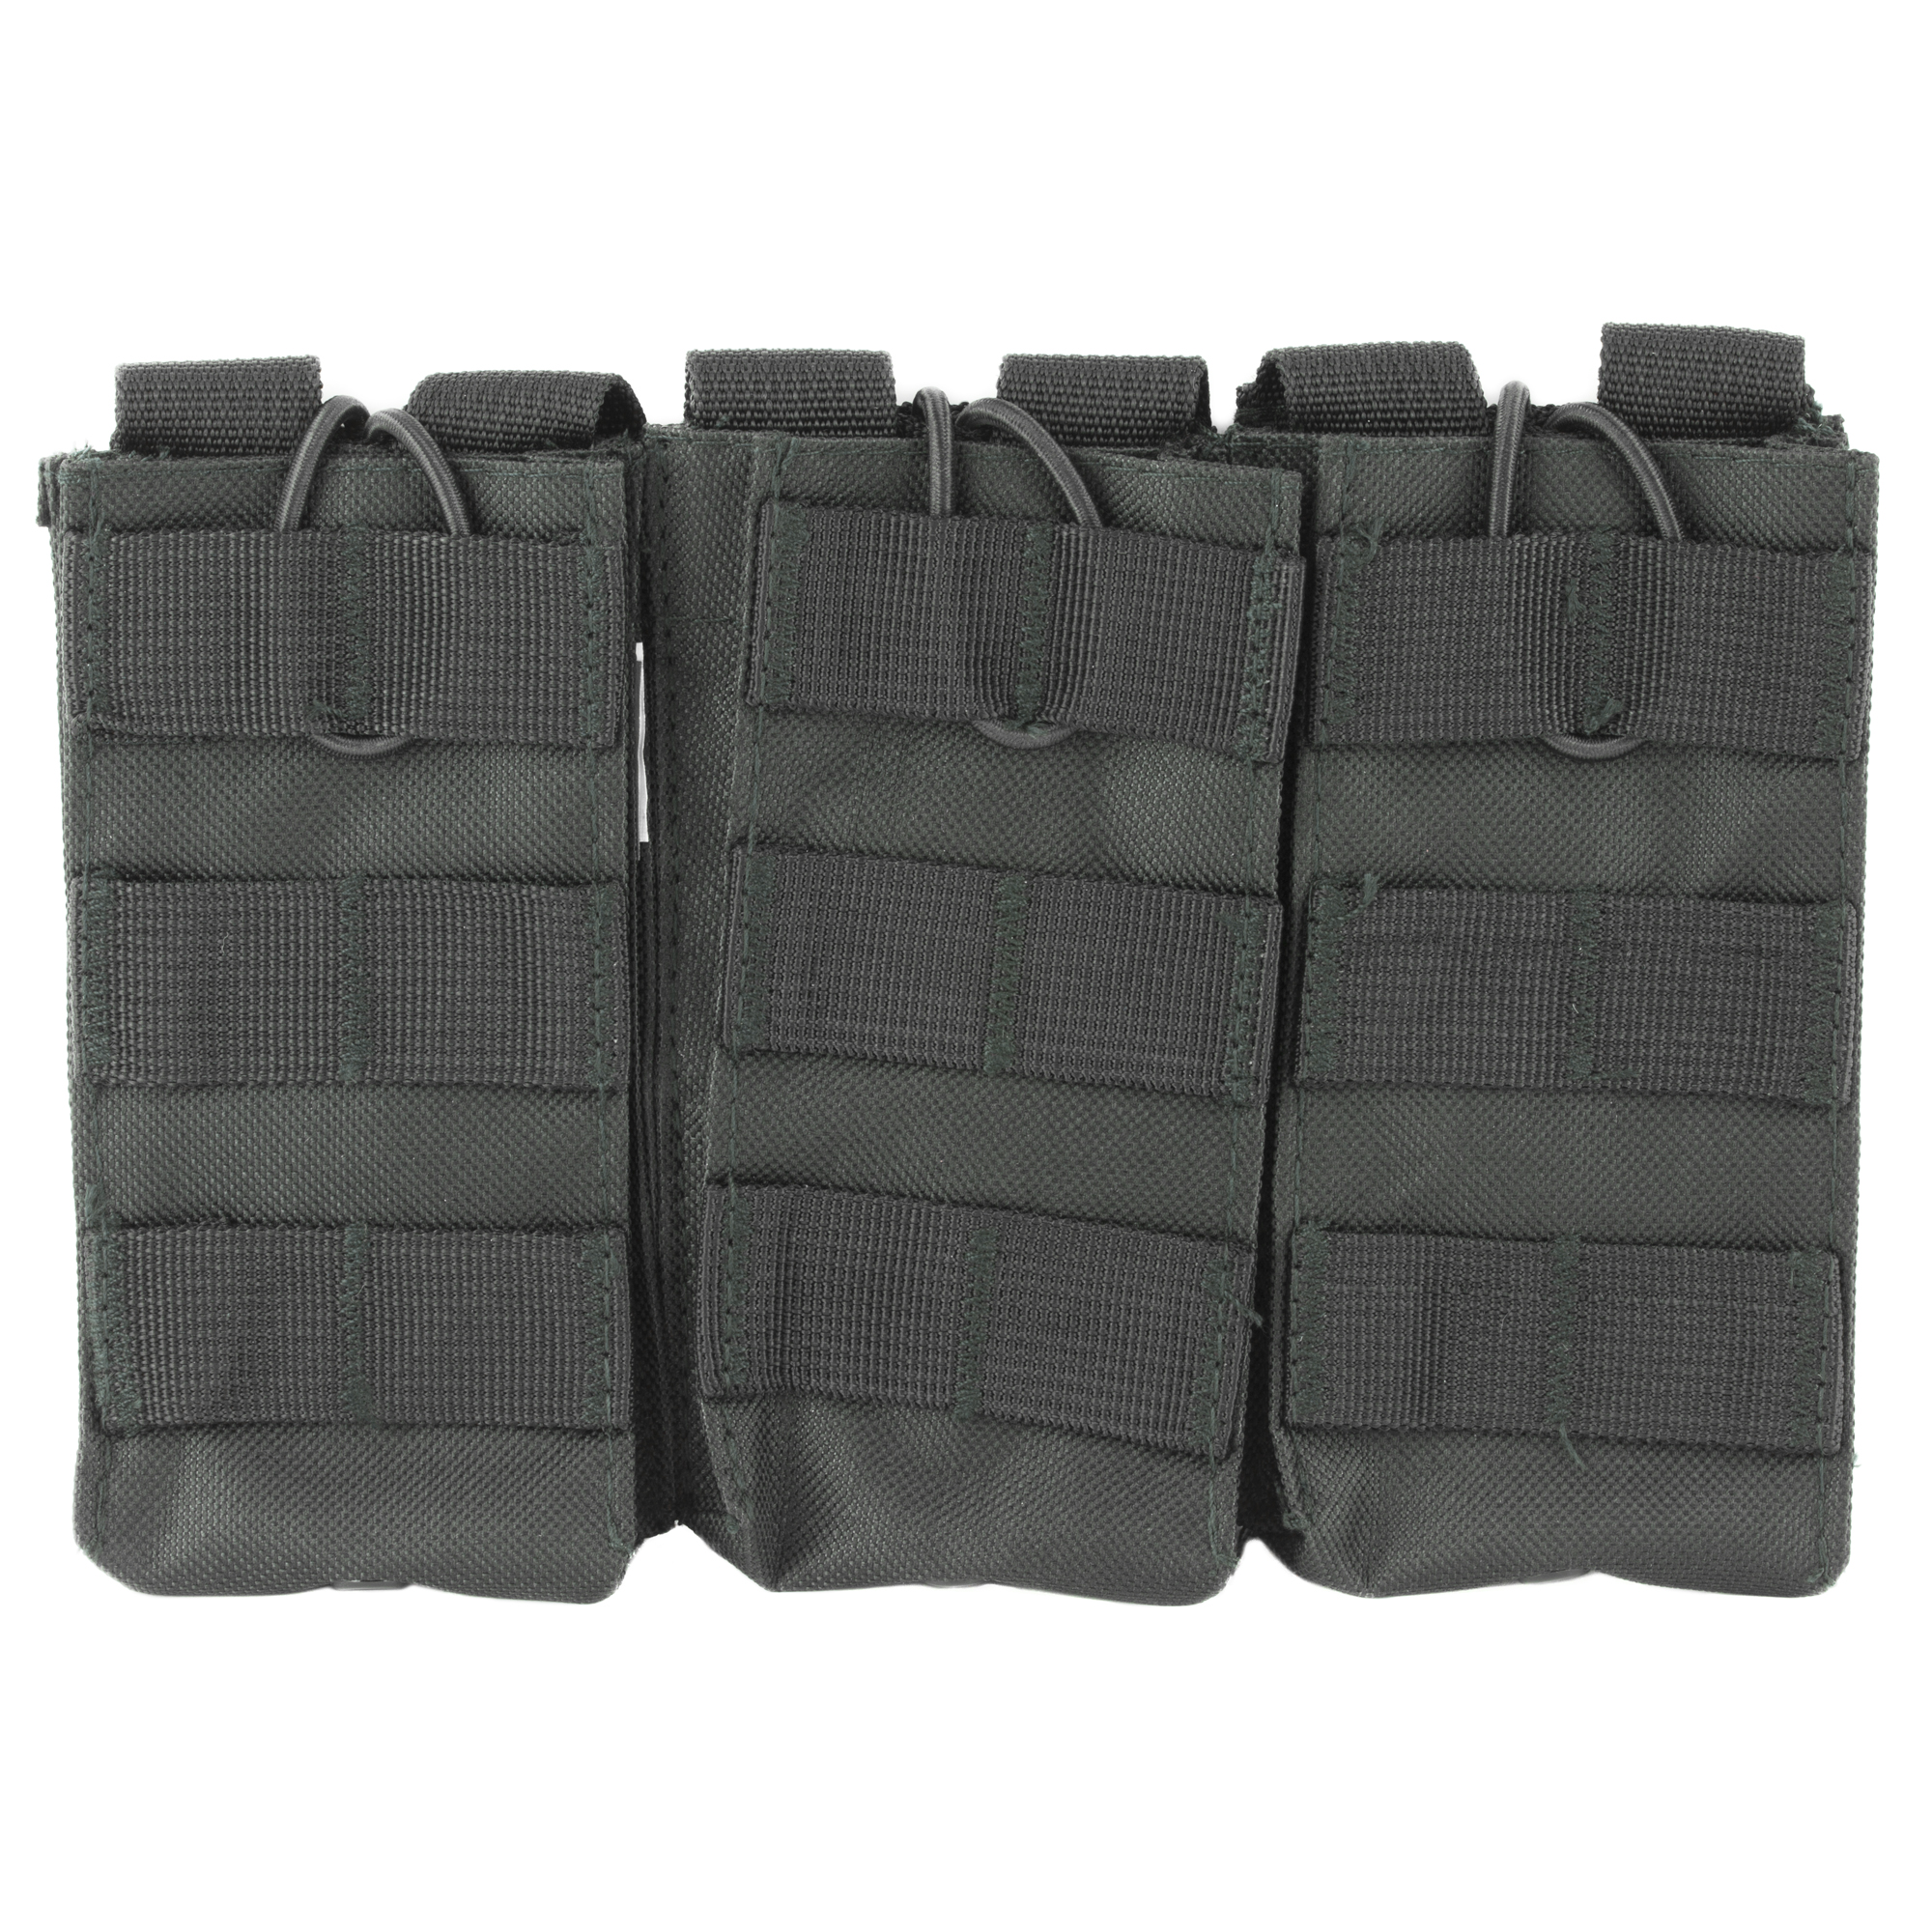 This triple AR magazine pouch holds three AR style 5.56/223 or 7.62x39 magazines. Adjustable Bungee Style Retention Straps make Access to your Magazines easy while securely holding them in place.